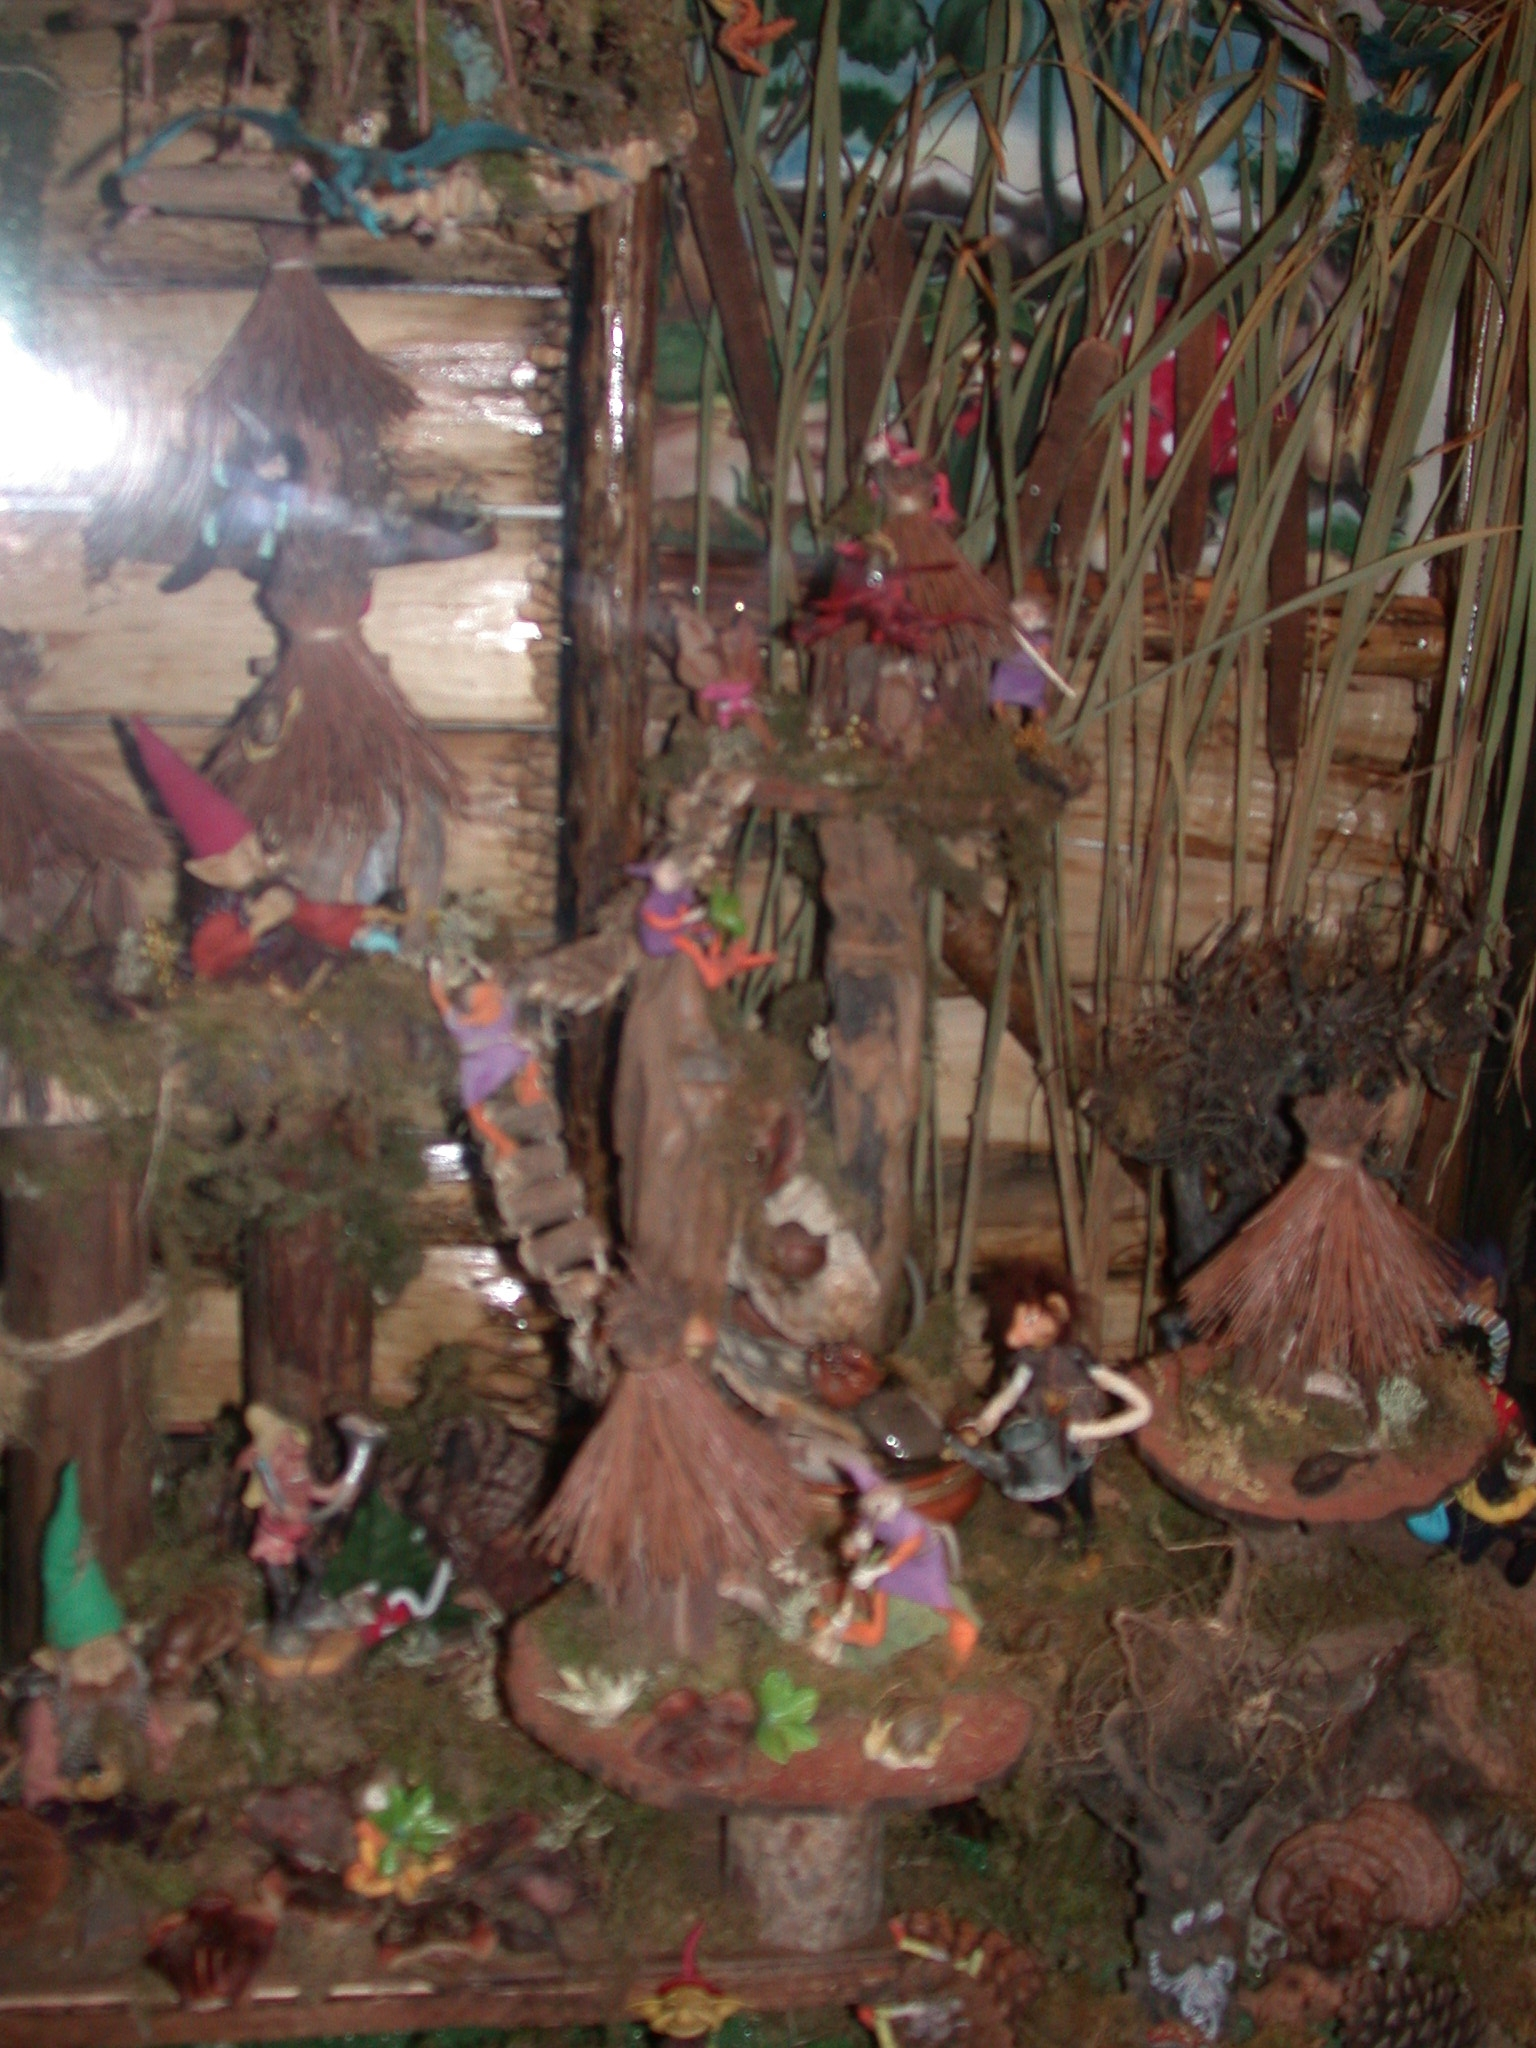 Frolicking Faeries, Faerie Shoppe, San Telmo, Buenos Aires, Argentina